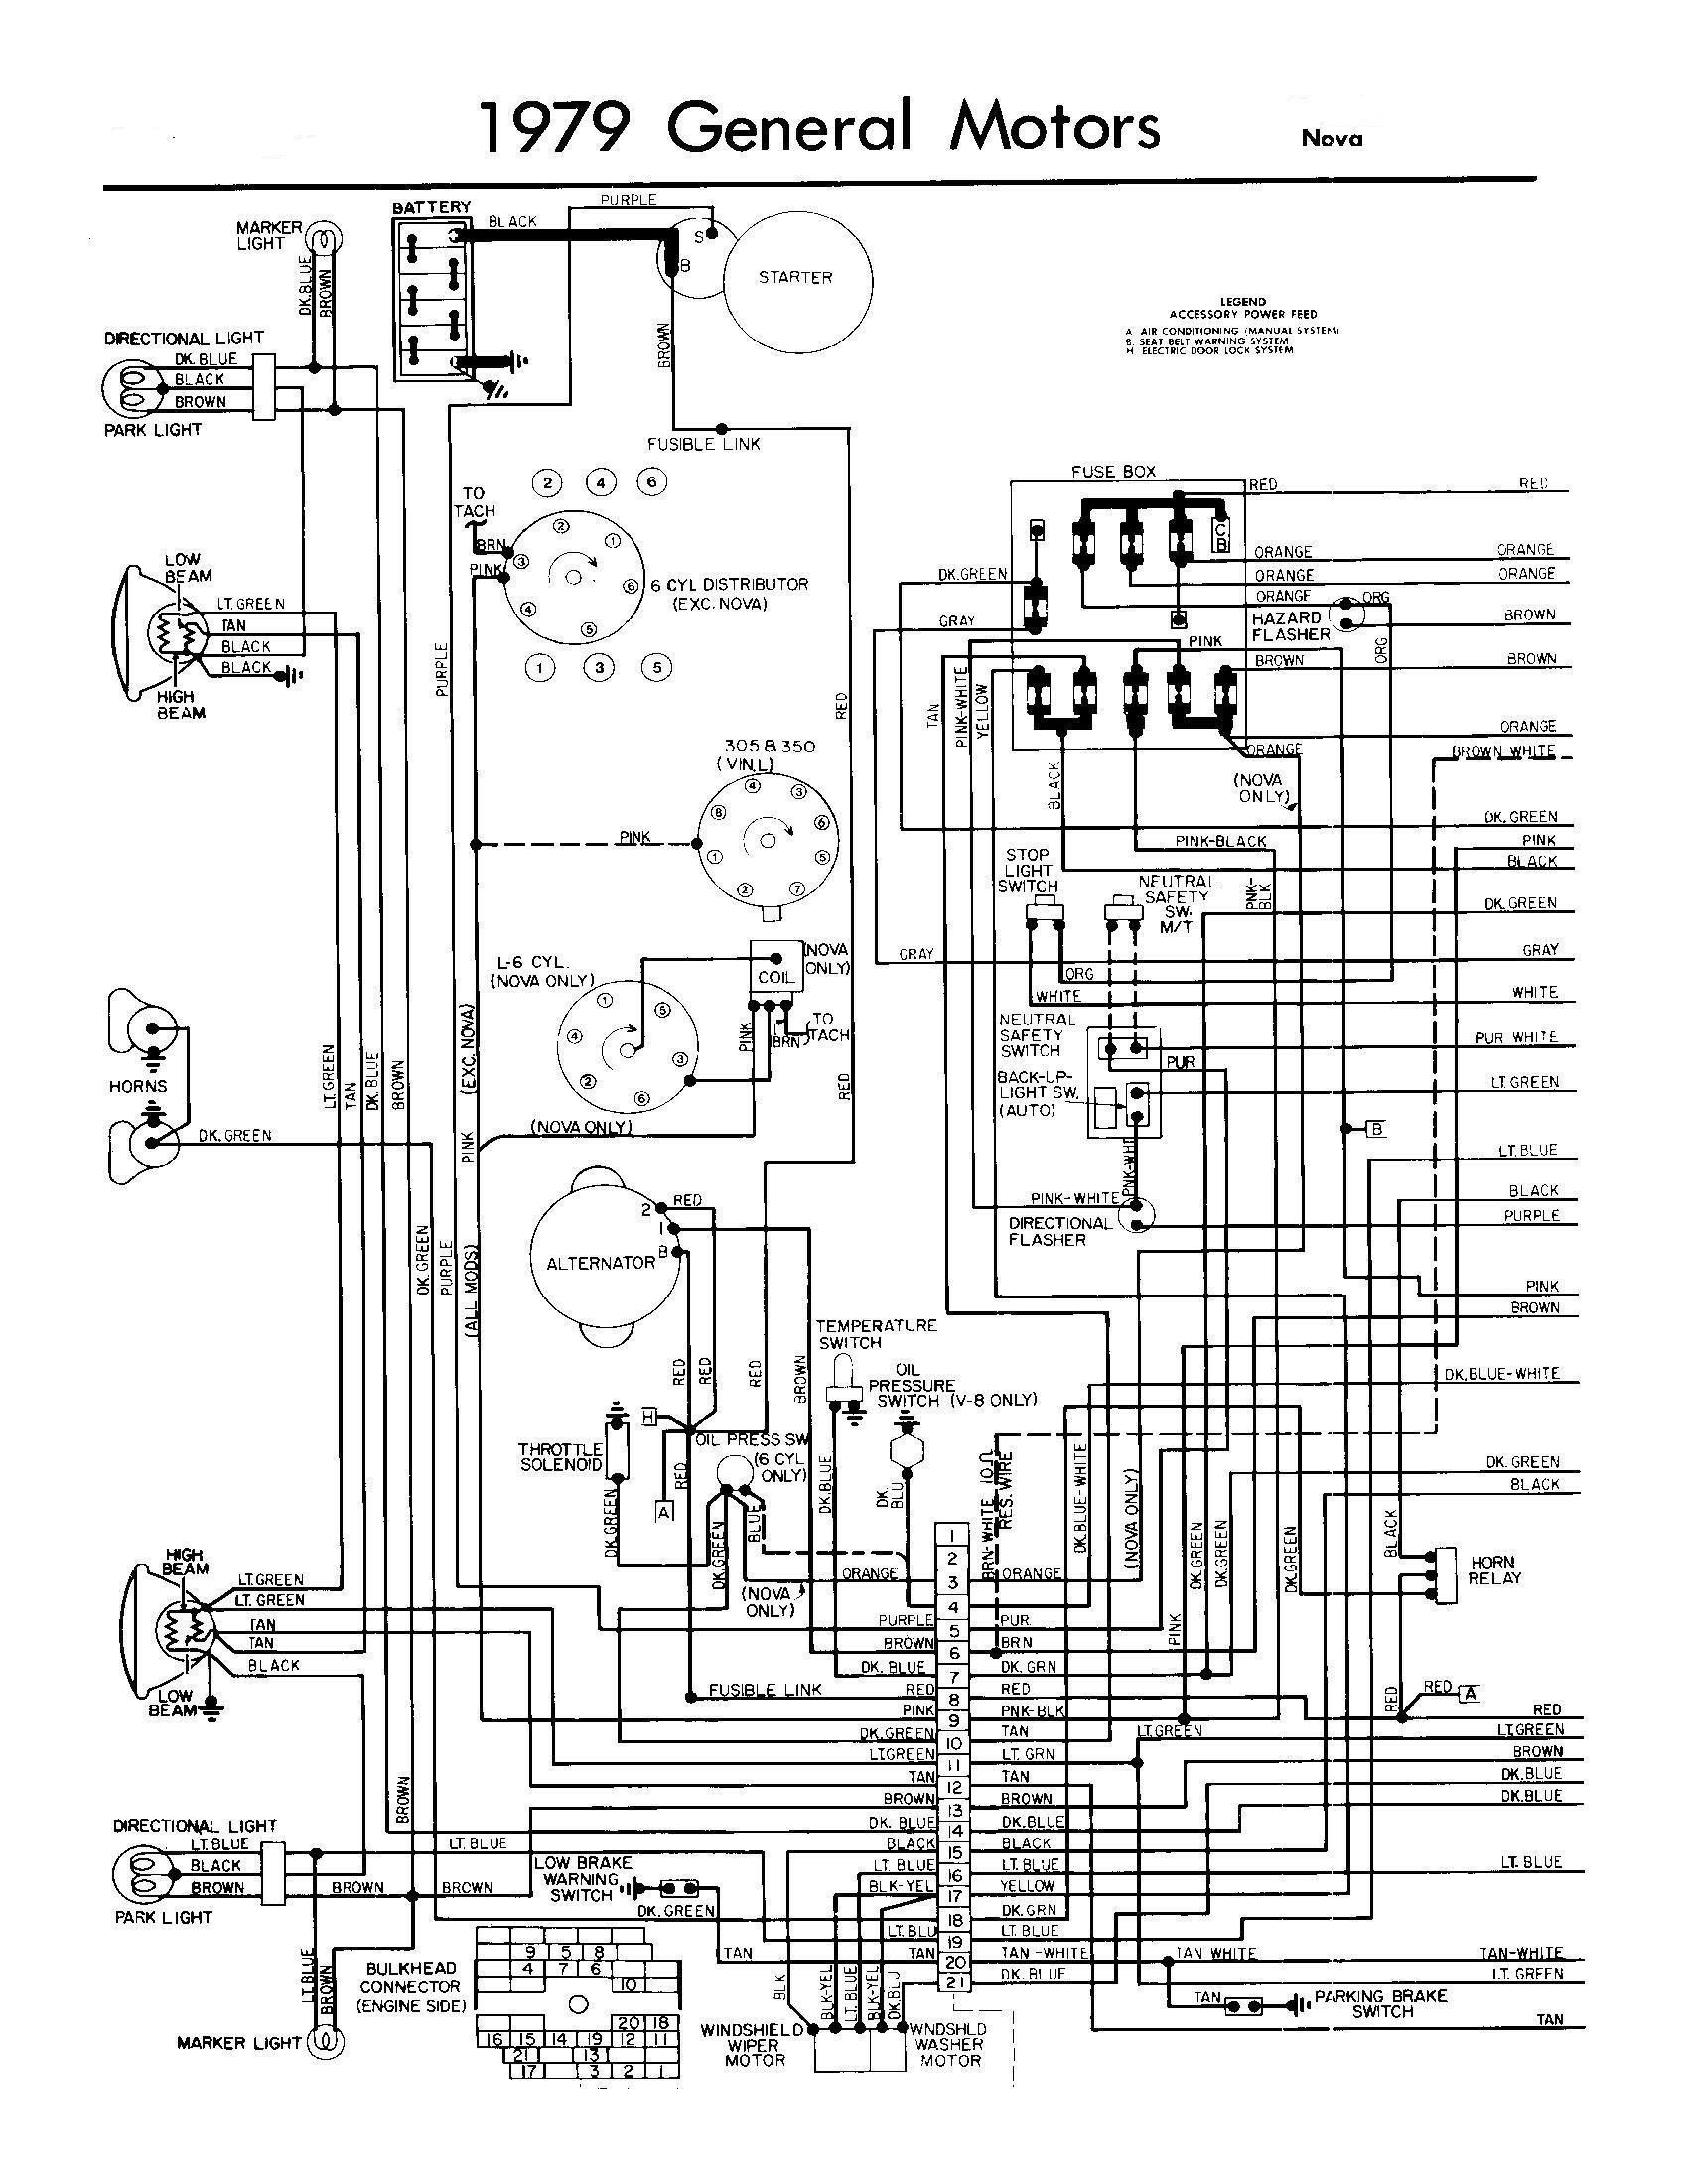 85 monte carlo wiring diagram free picture 23 automatic engine wiring harness diagram technique chevy trucks  23 automatic engine wiring harness